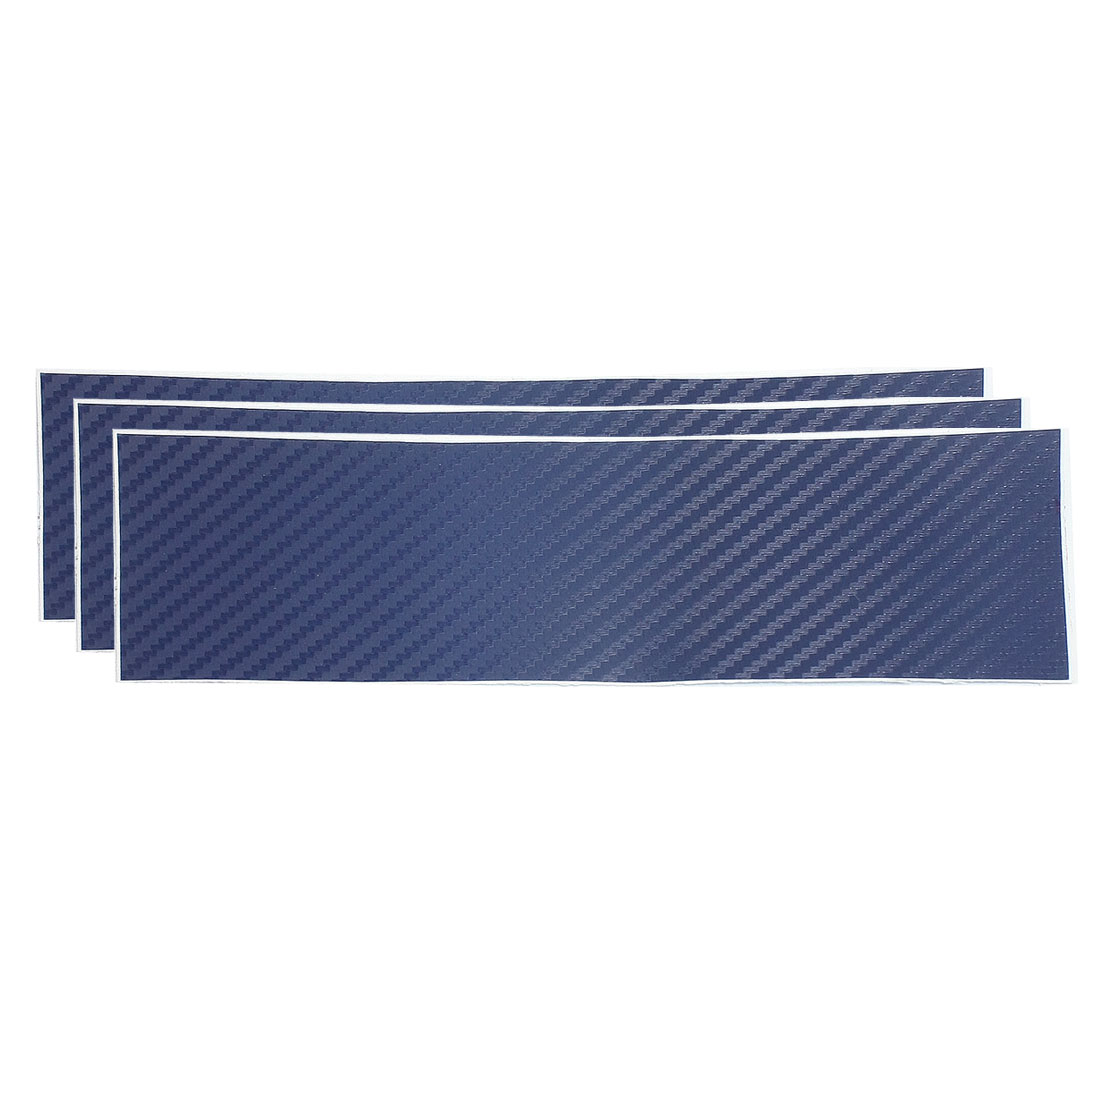 3 Pcs Blue Car Decorative Carbon Fiber 3D Film Sticker 6x20cm